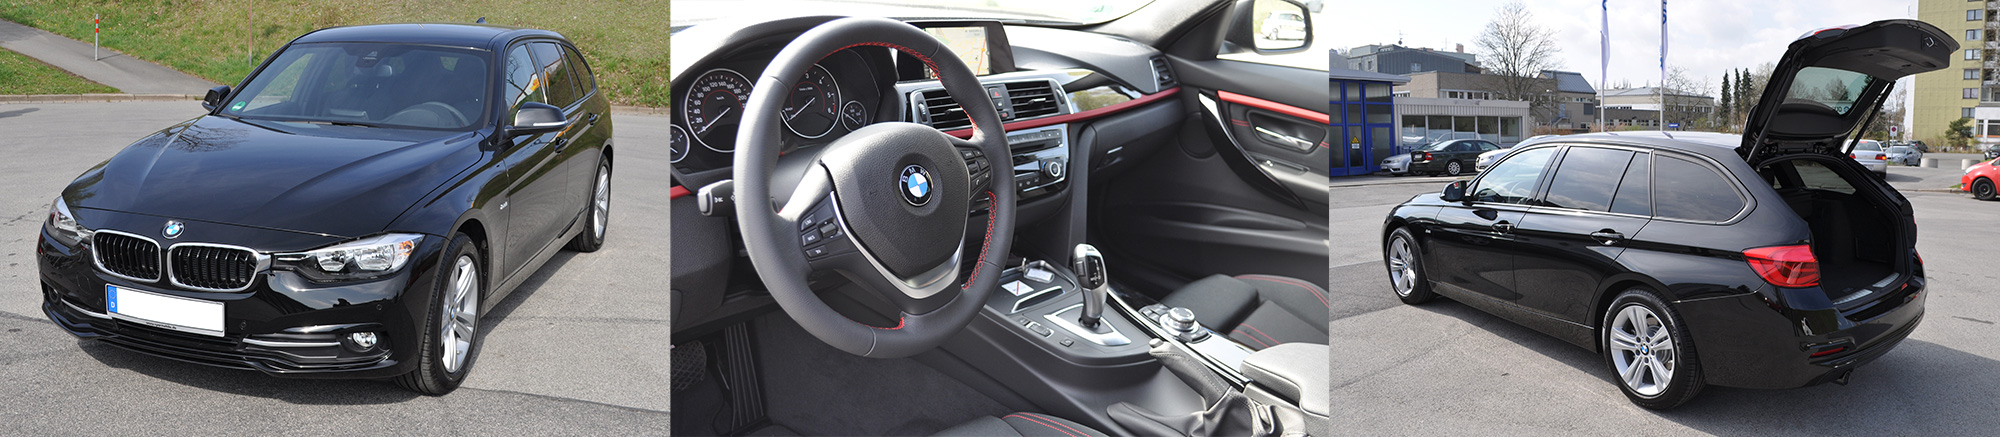 bmw 318d touring sparmobile ihre autovermietung in coburg. Black Bedroom Furniture Sets. Home Design Ideas